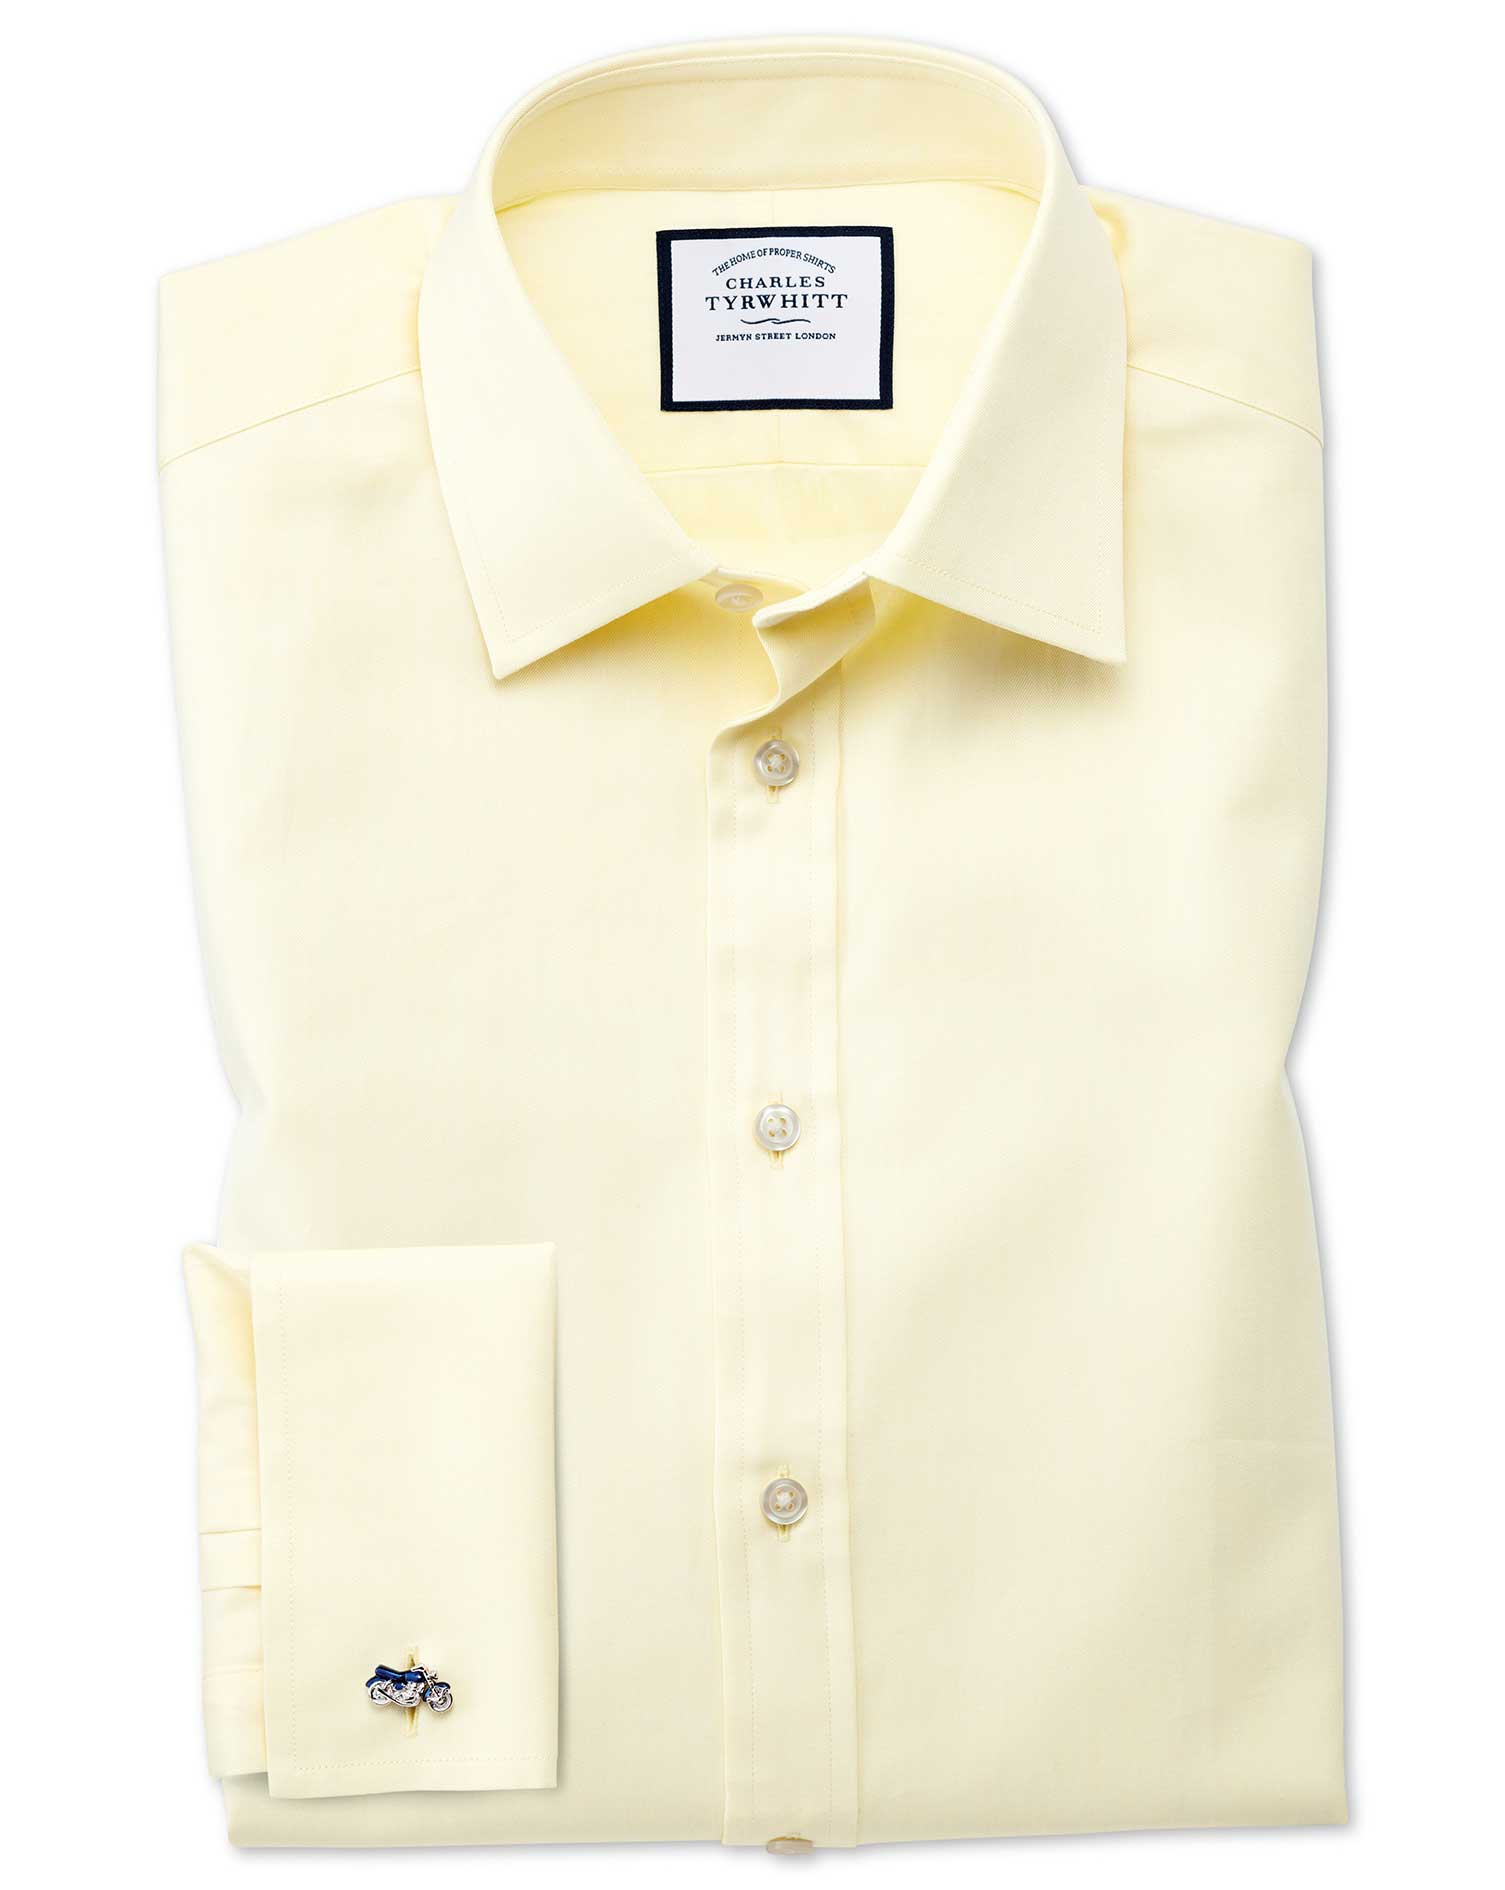 Extra Slim Fit Fine Herringbone Yellow Cotton Formal Shirt Double Cuff Size 16/34 by Charles Tyrwhit